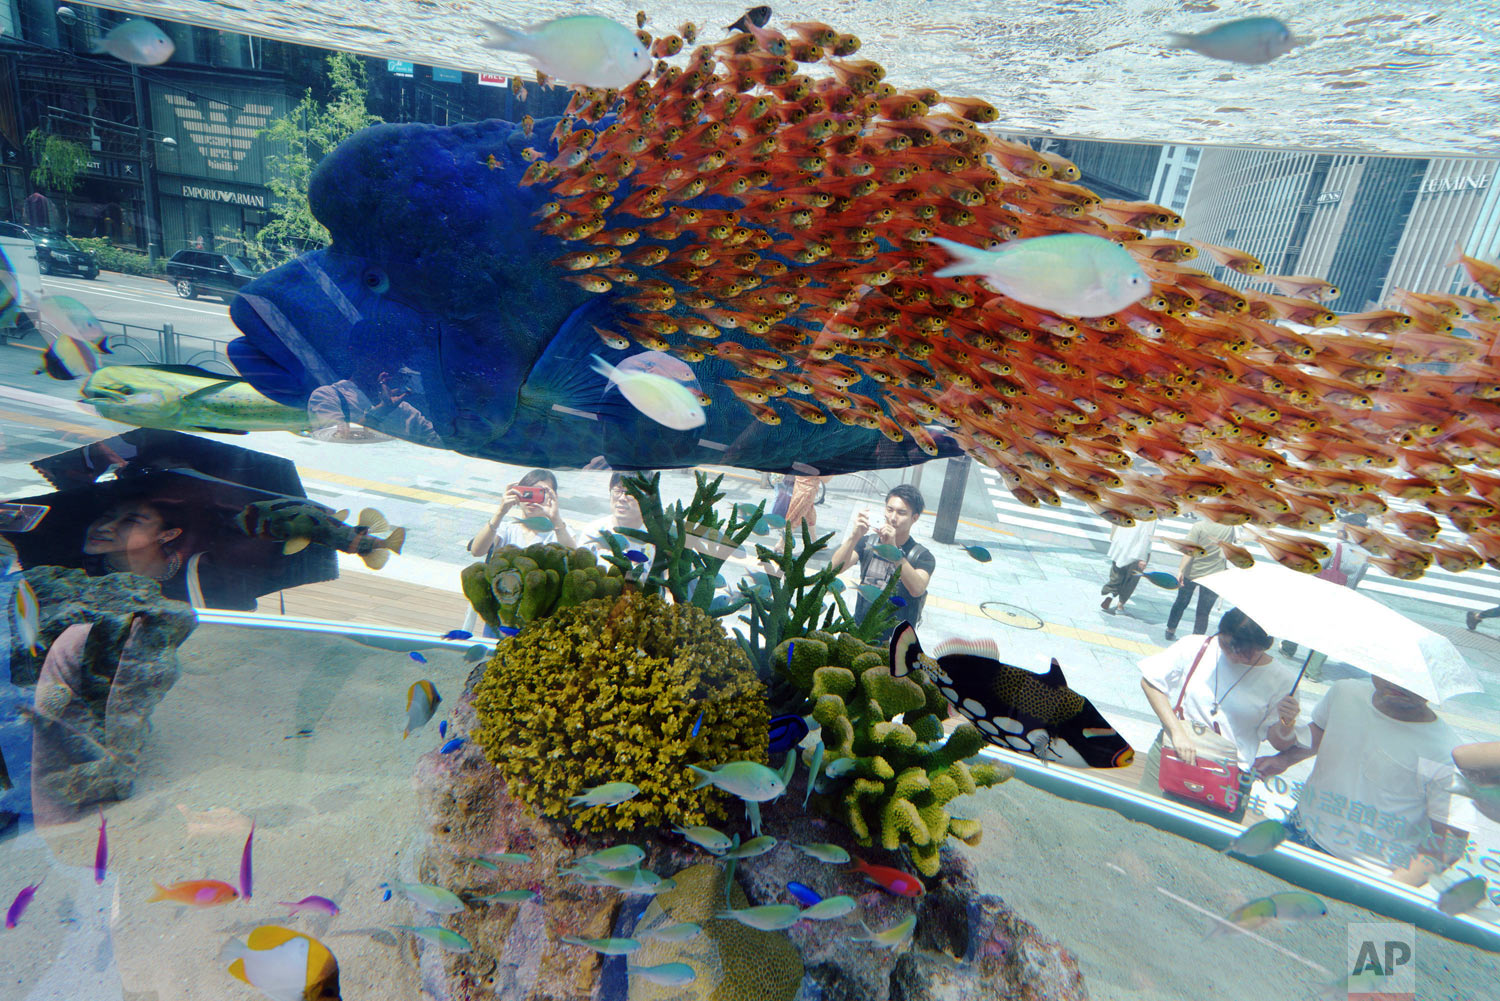 Passers-by look at fish swimming in a large tank in the Ginza shopping district of Tokyo on Tuesday, Aug. 28, 2018. (AP Photo/Eugene Hoshiko)